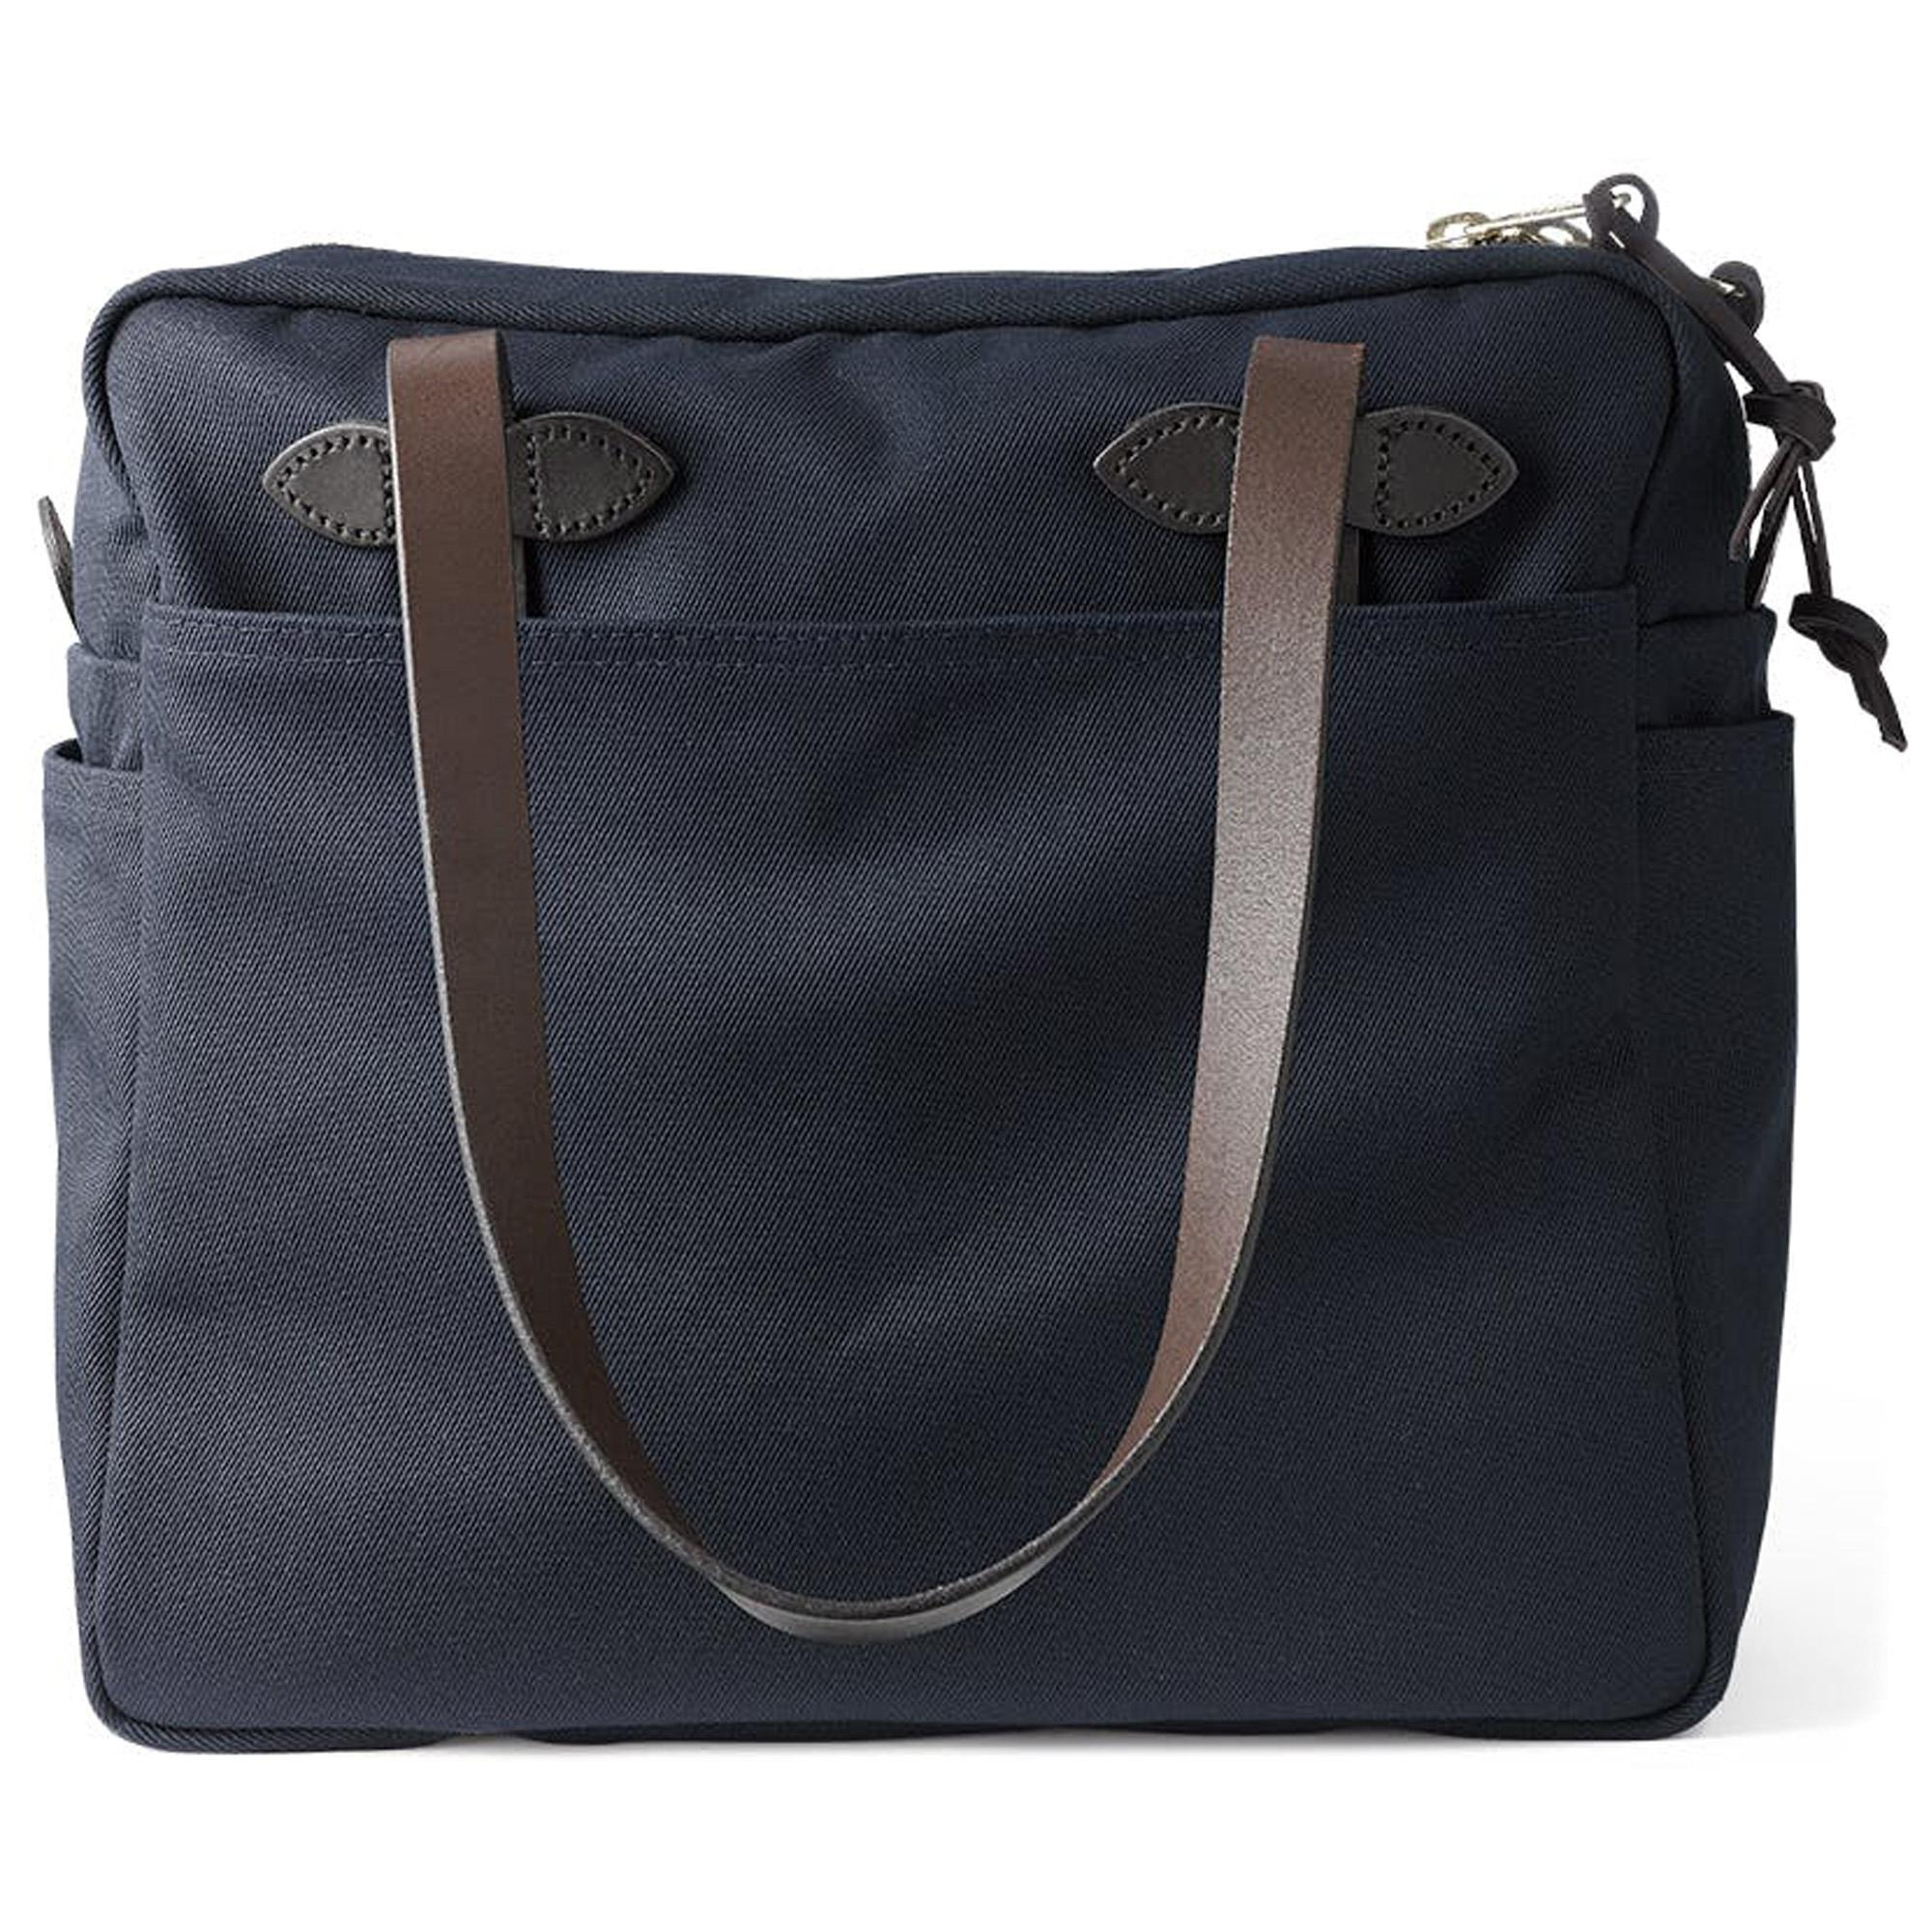 Filson Women/'s Rugged Twill Tote Bag with Zipper Otter Green